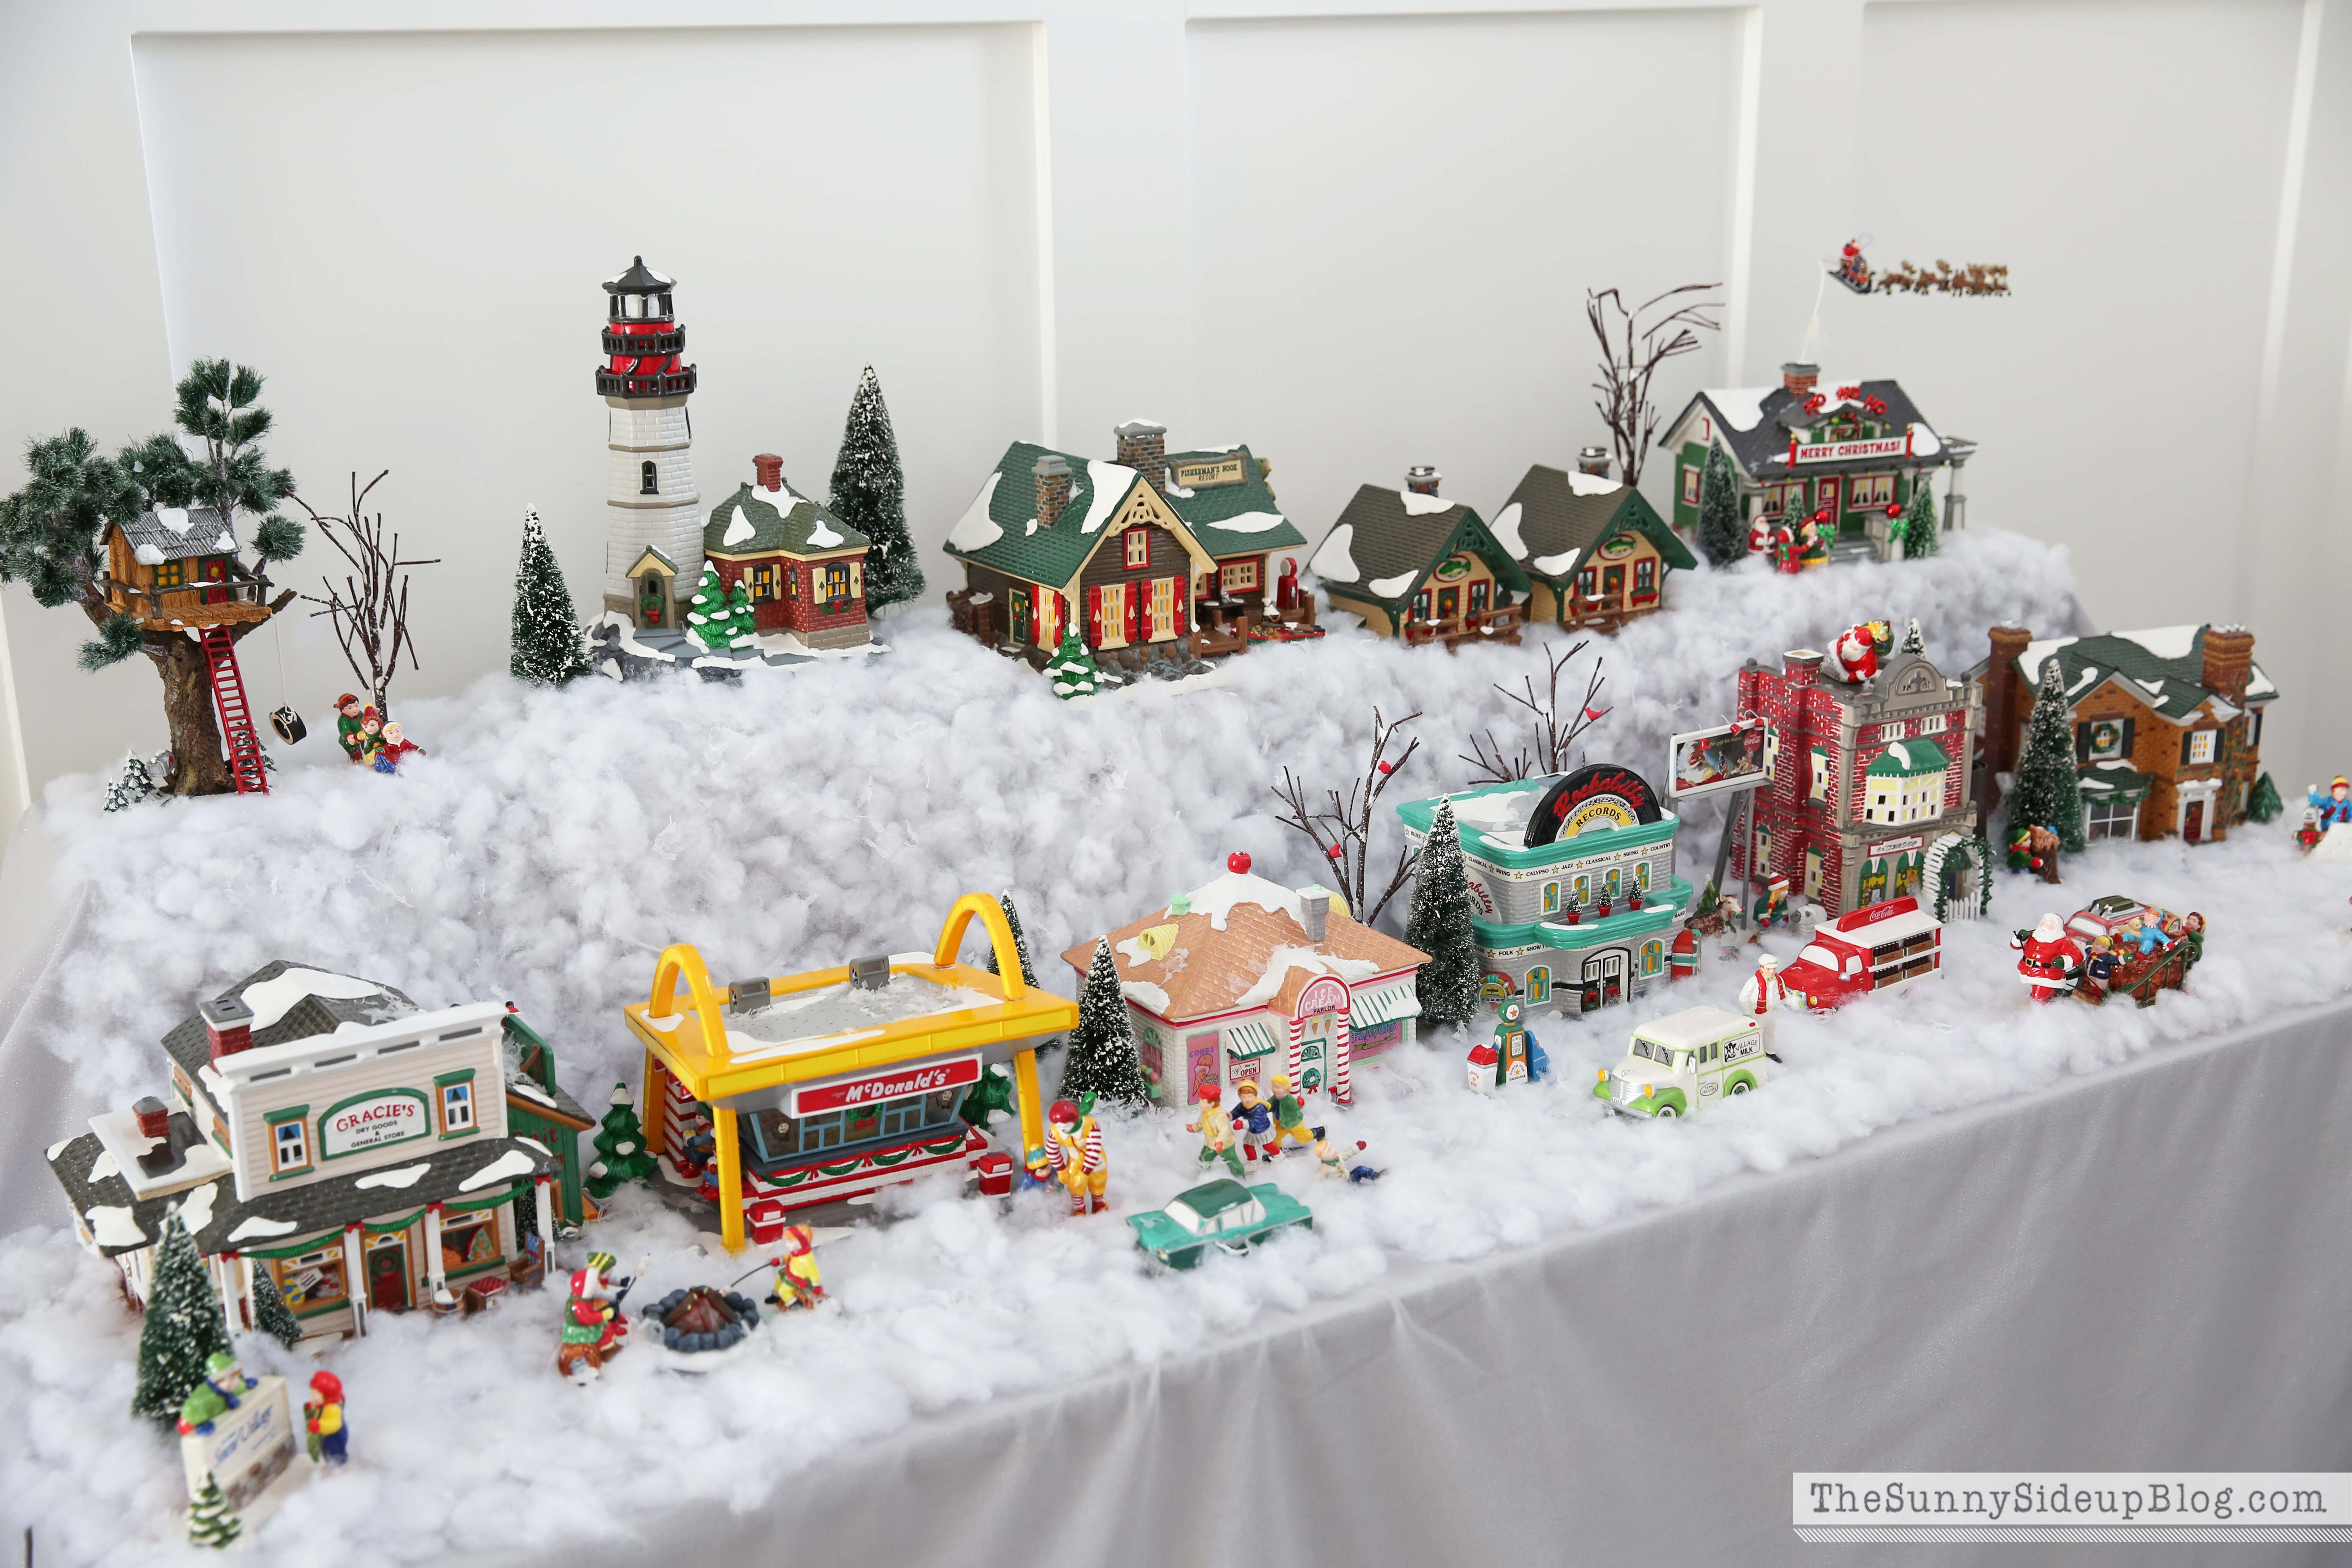 when i was growing up my mom collected this snow village and i have the best memories of having it displayed in our home every year at christmas